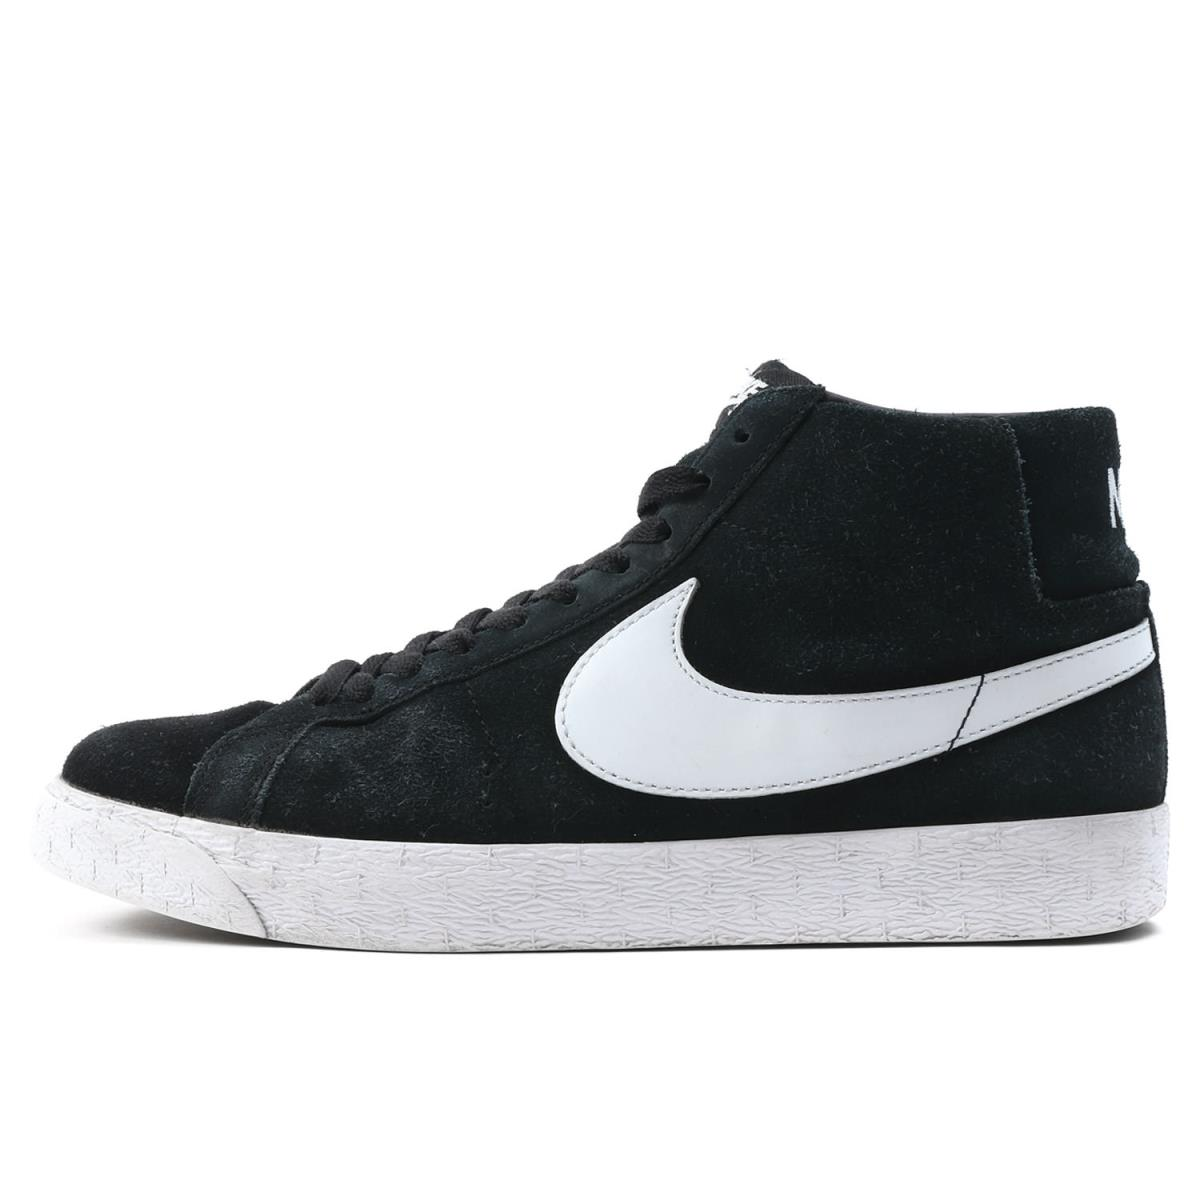 best website 729ad 994e3 ... coupon code nike nike blazer sb 310801 011 black x white us9.527.5cm  92a69